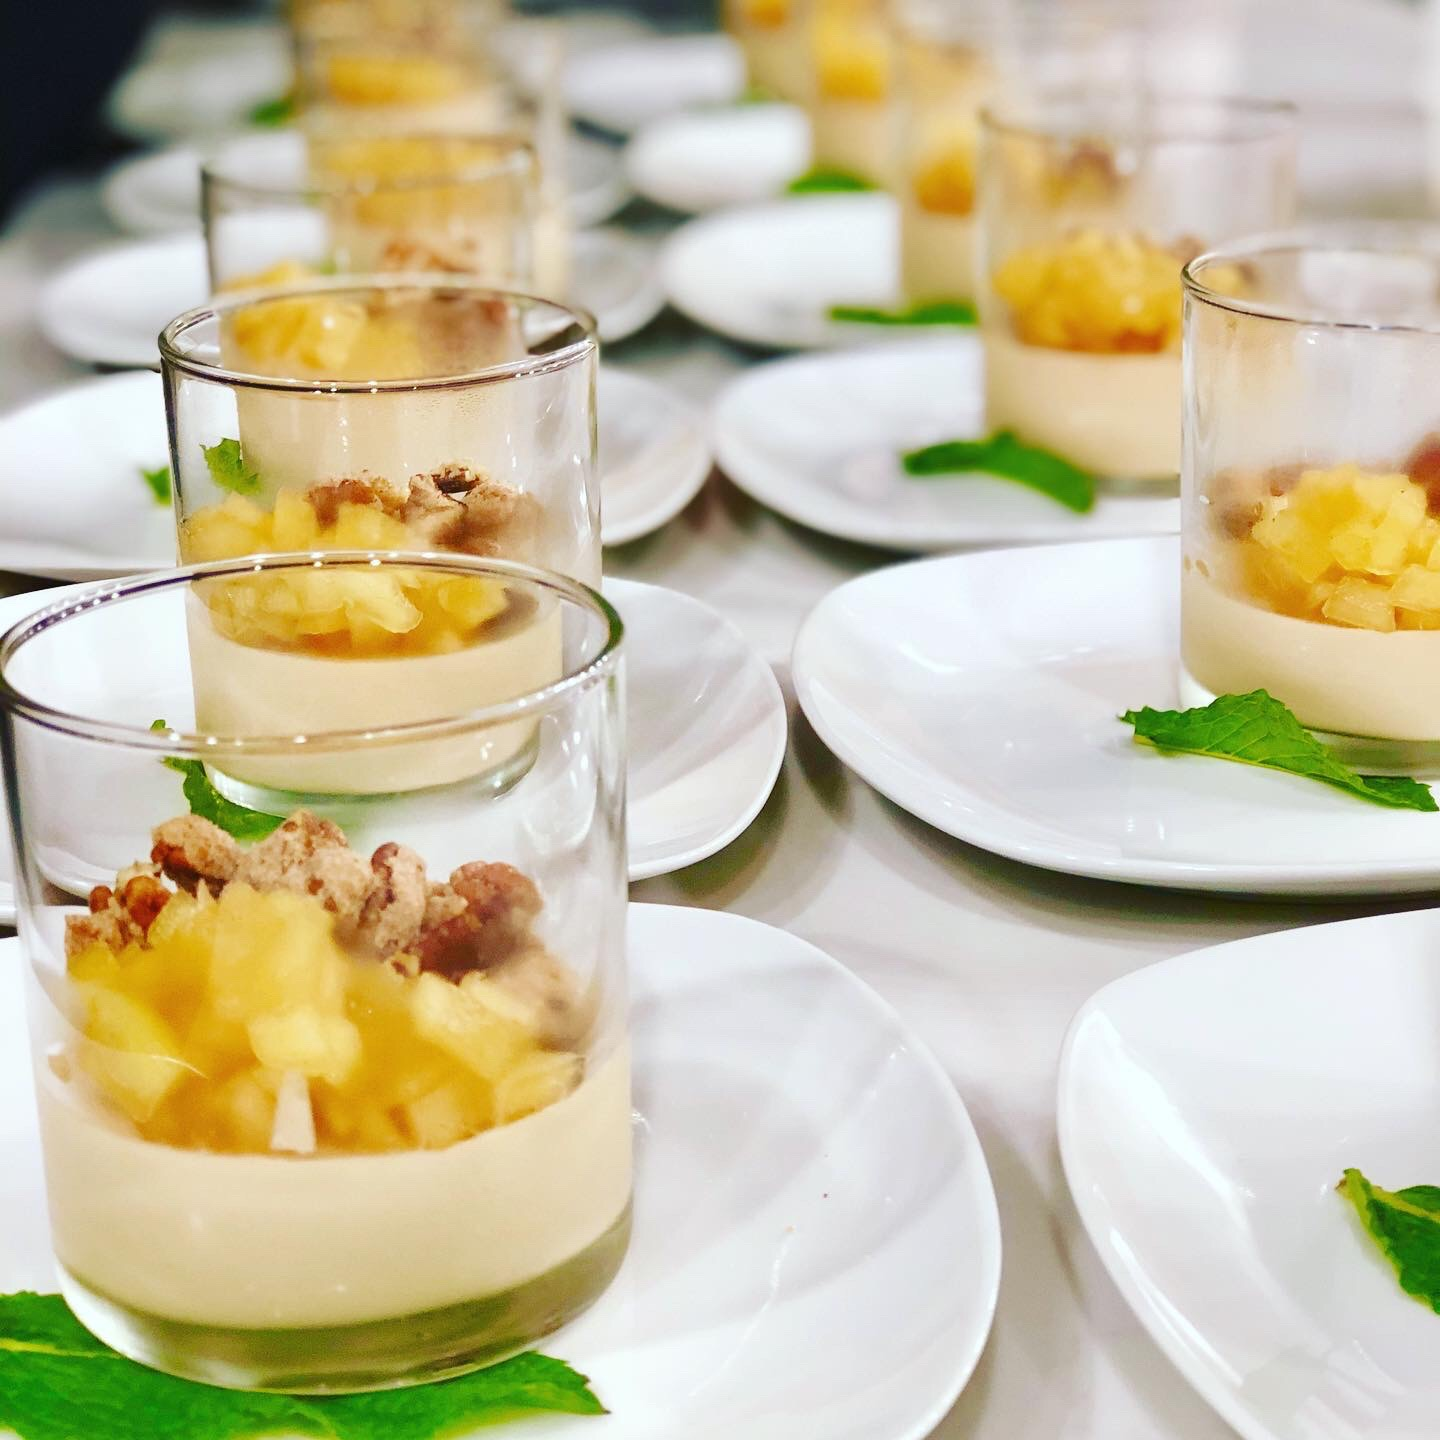 Earl Grey Panna Cotta with Apples